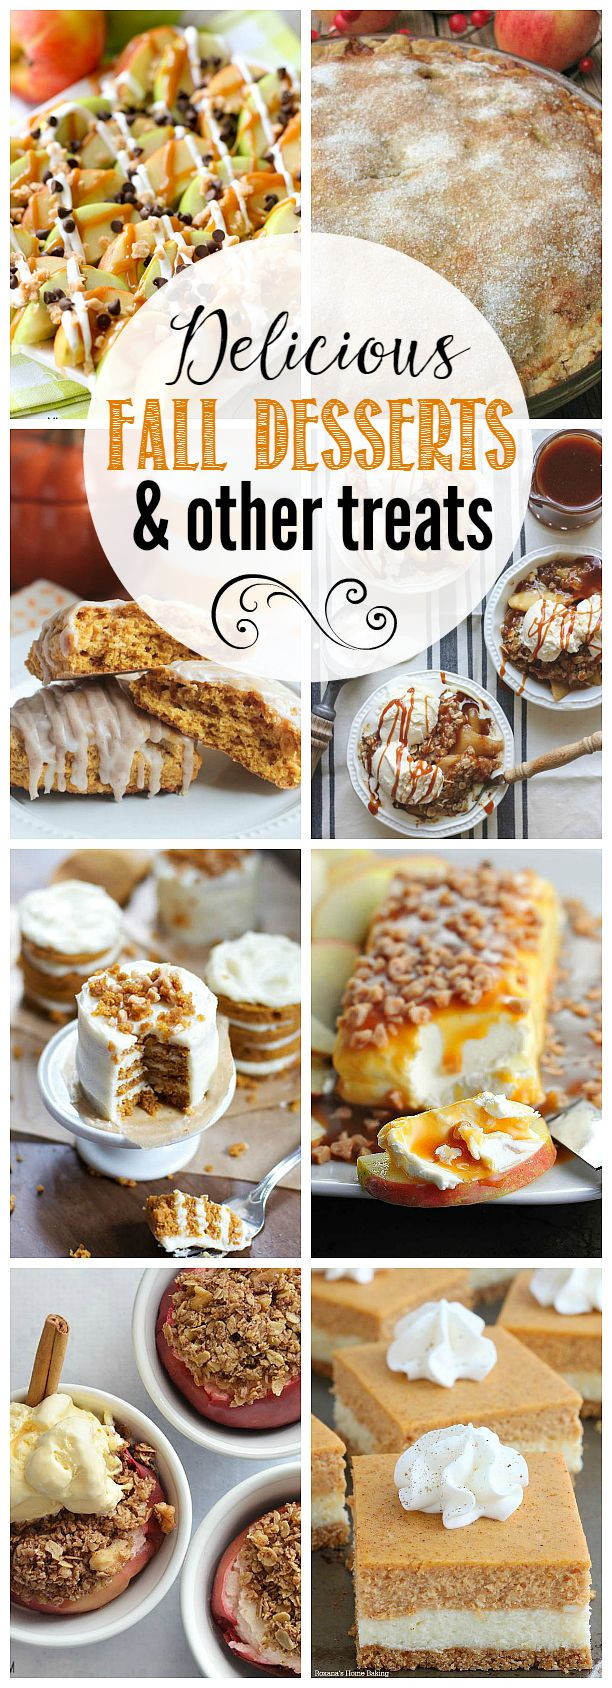 Yummy Fall Desserts  Salted Caramel Apple Pie Recipe Clean and Scentsible